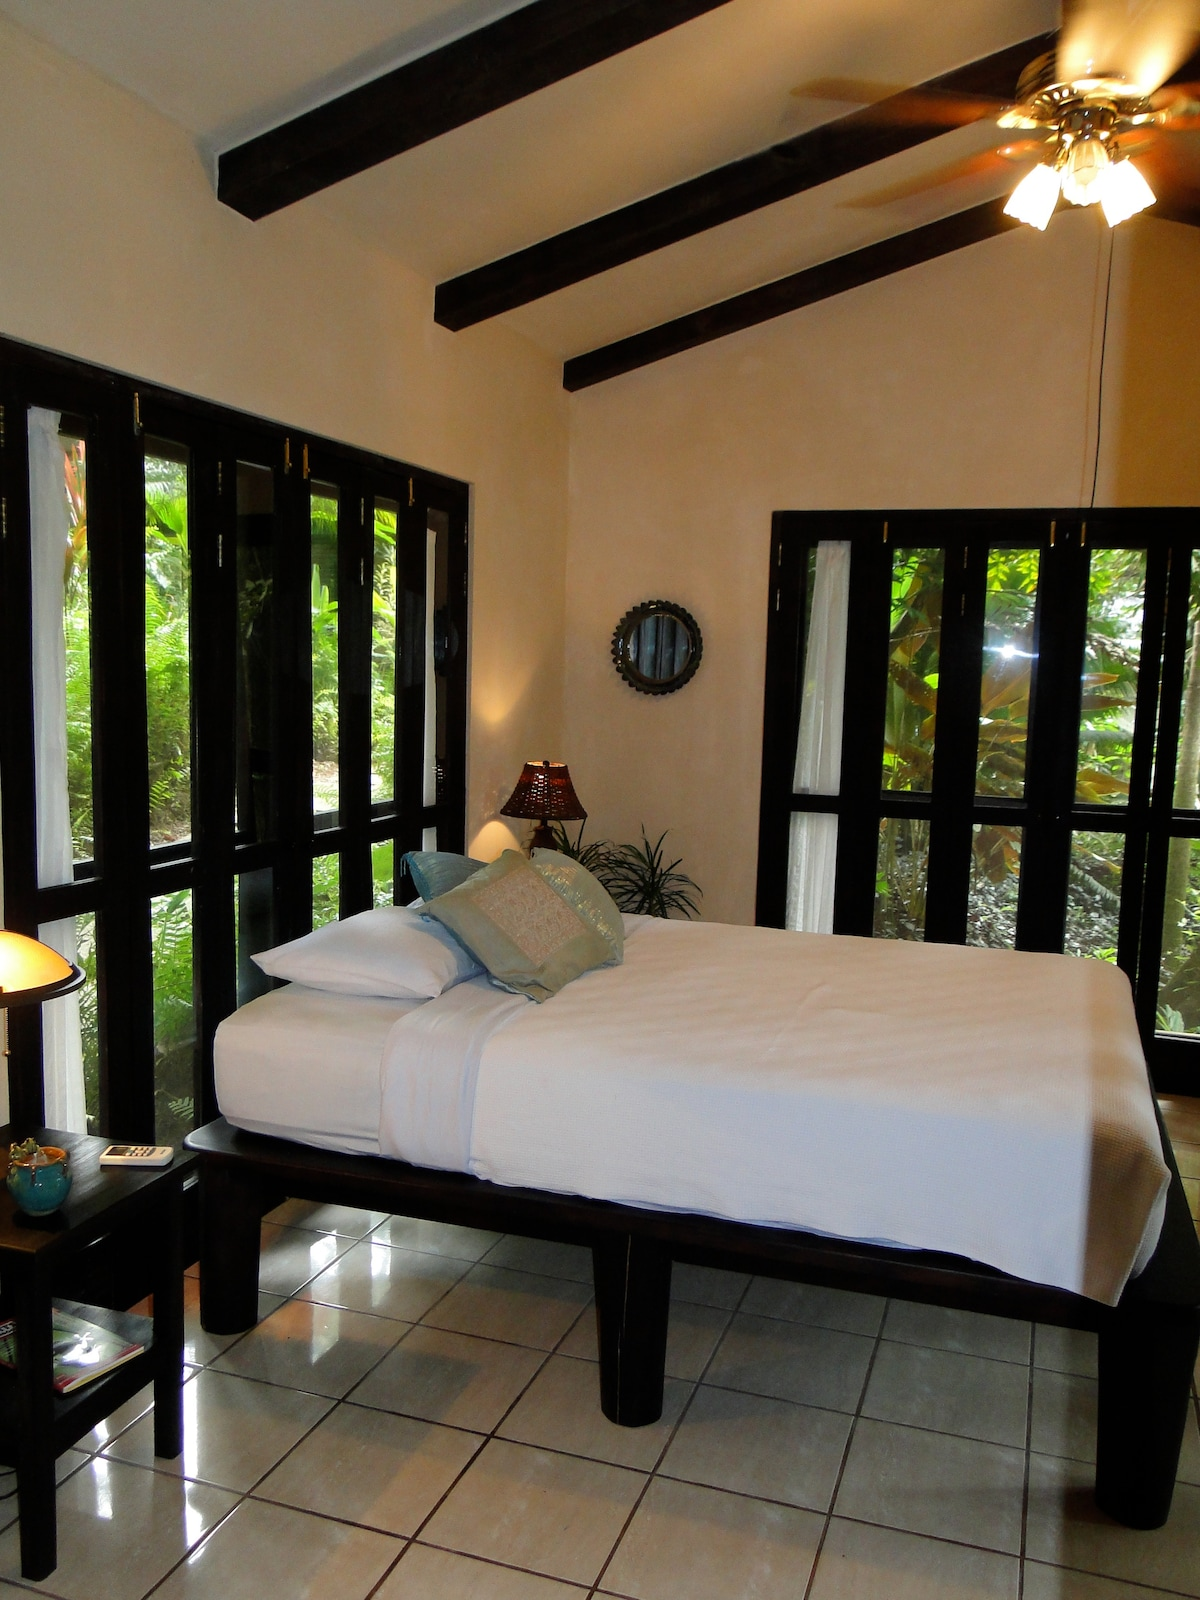 guest bedroom with orth. queen bed and 100% high count cotton sheets,   all doors fold back with screens in place for the experience of open air and the sounds of the jungle.